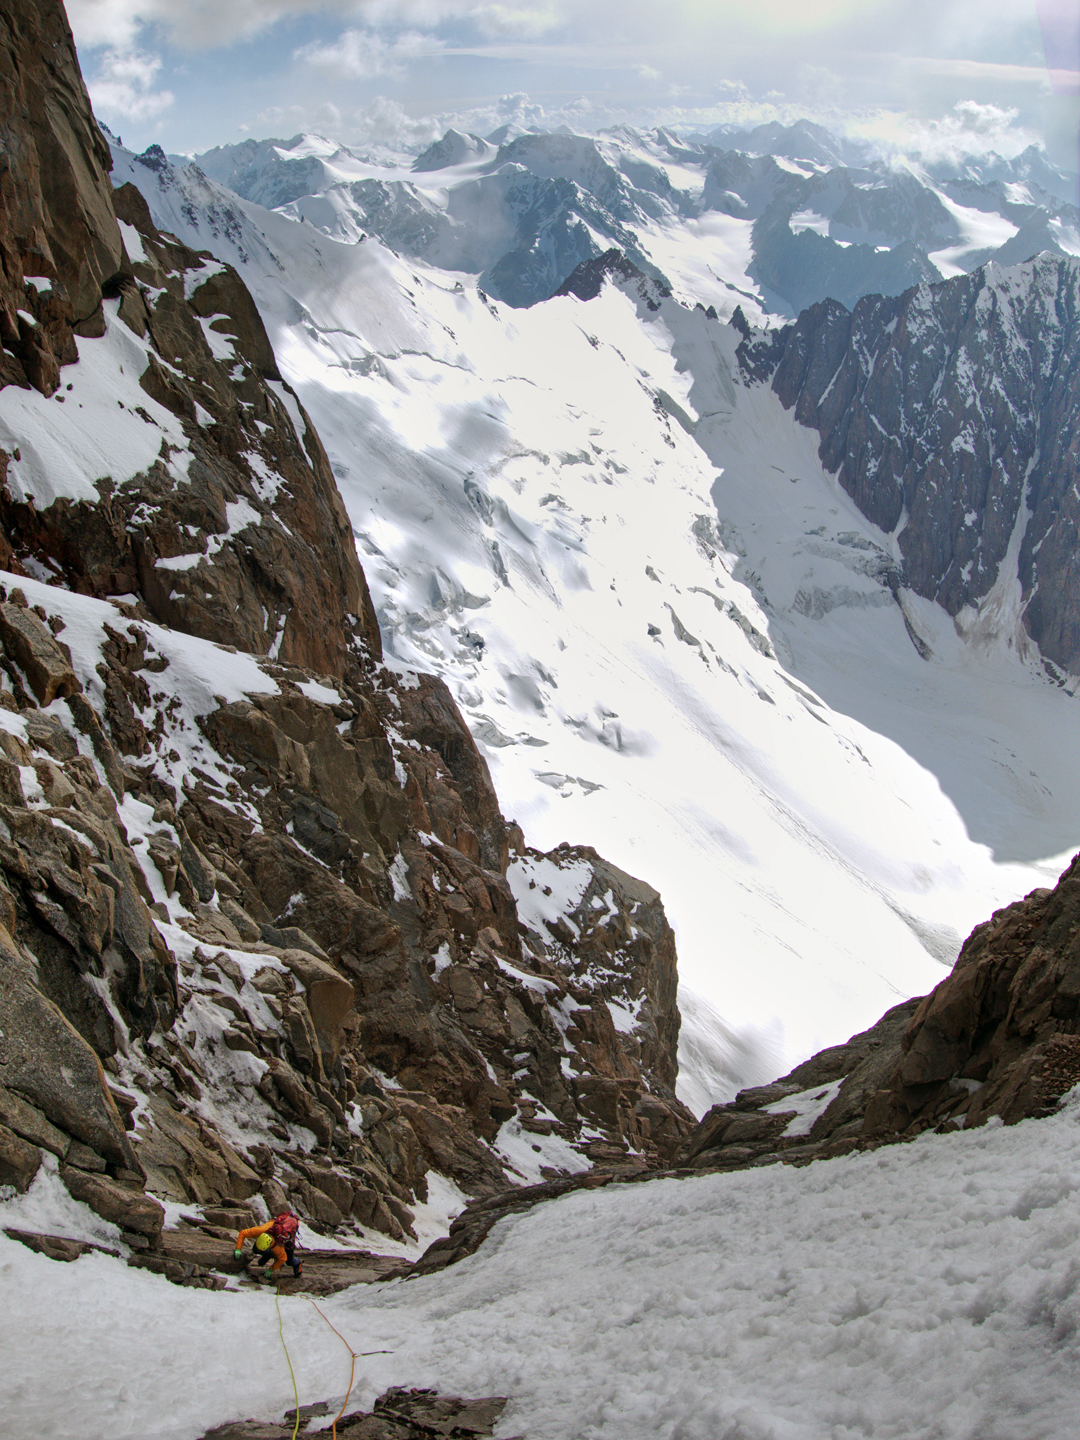 Grigoriy Chshukin exiting the last difficult section of the new route on the west face of Pik Trud. There were still seven pitches to go to reach the summit.